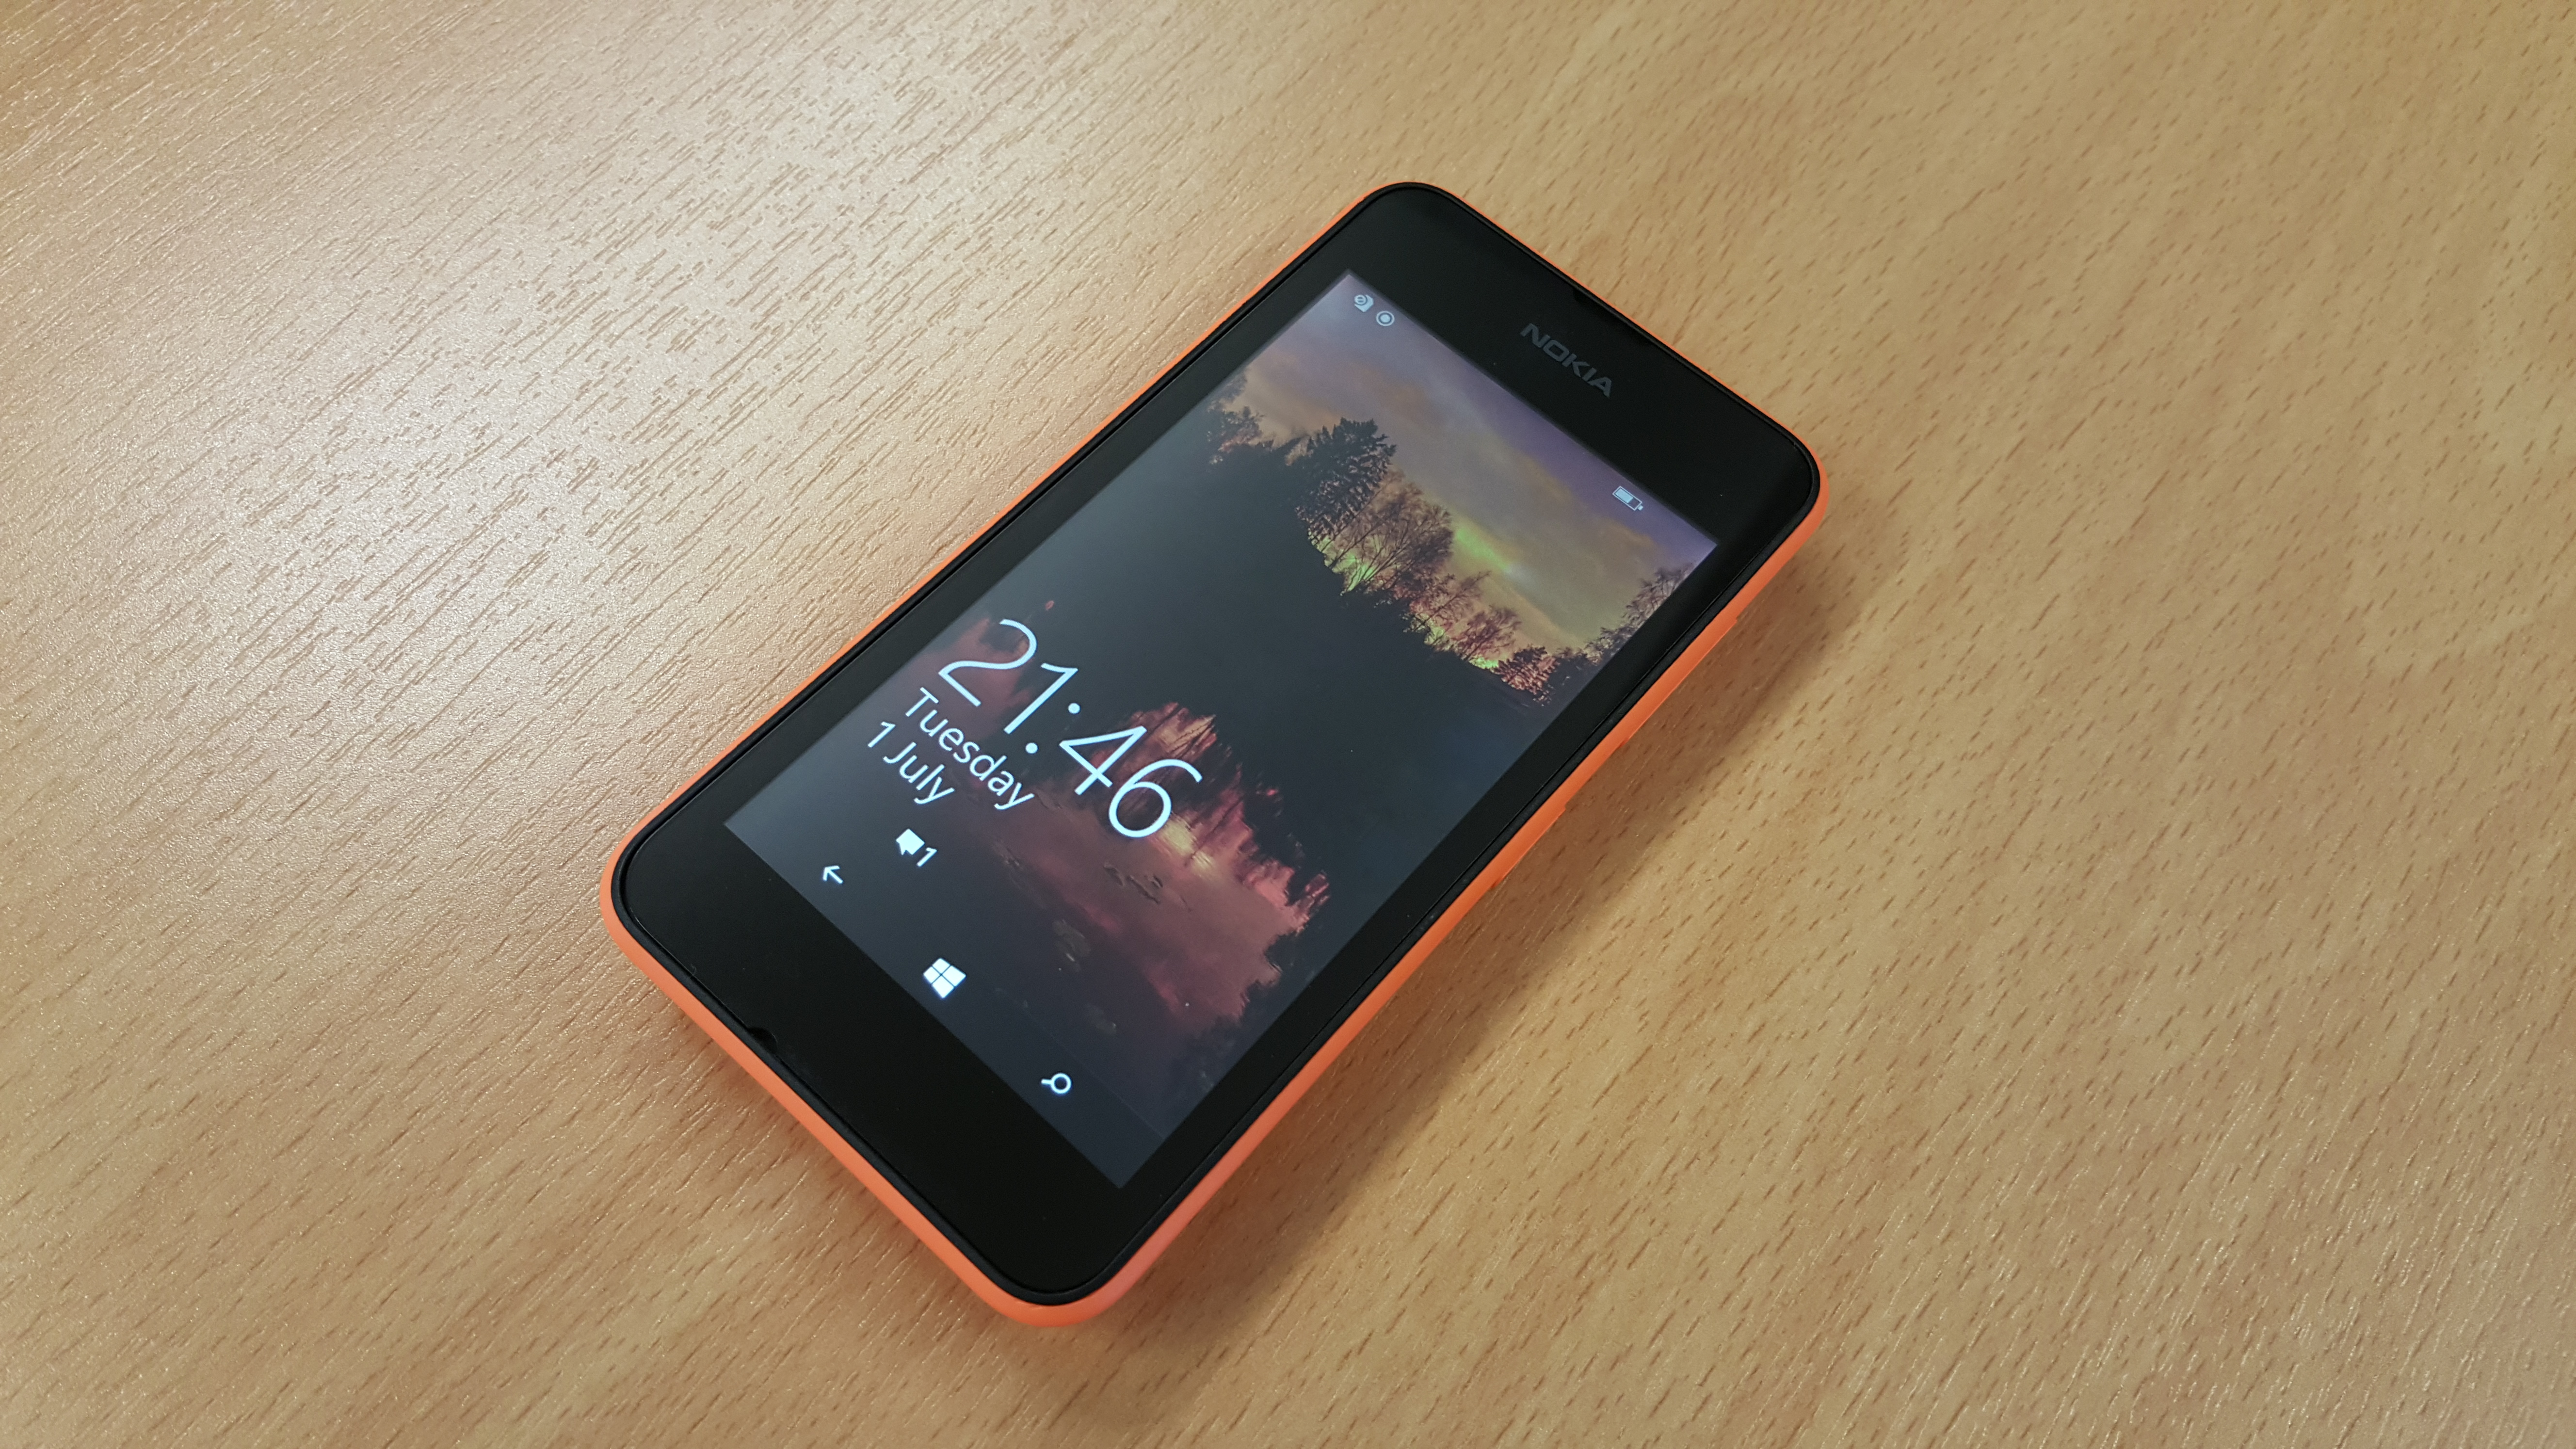 However, You Only Need To Switch On The Lumia 530 To See Where Nokia Has  Cut Corners To Keep The Price Down The Phone's 4in 854x480 Display Not  Only Has A